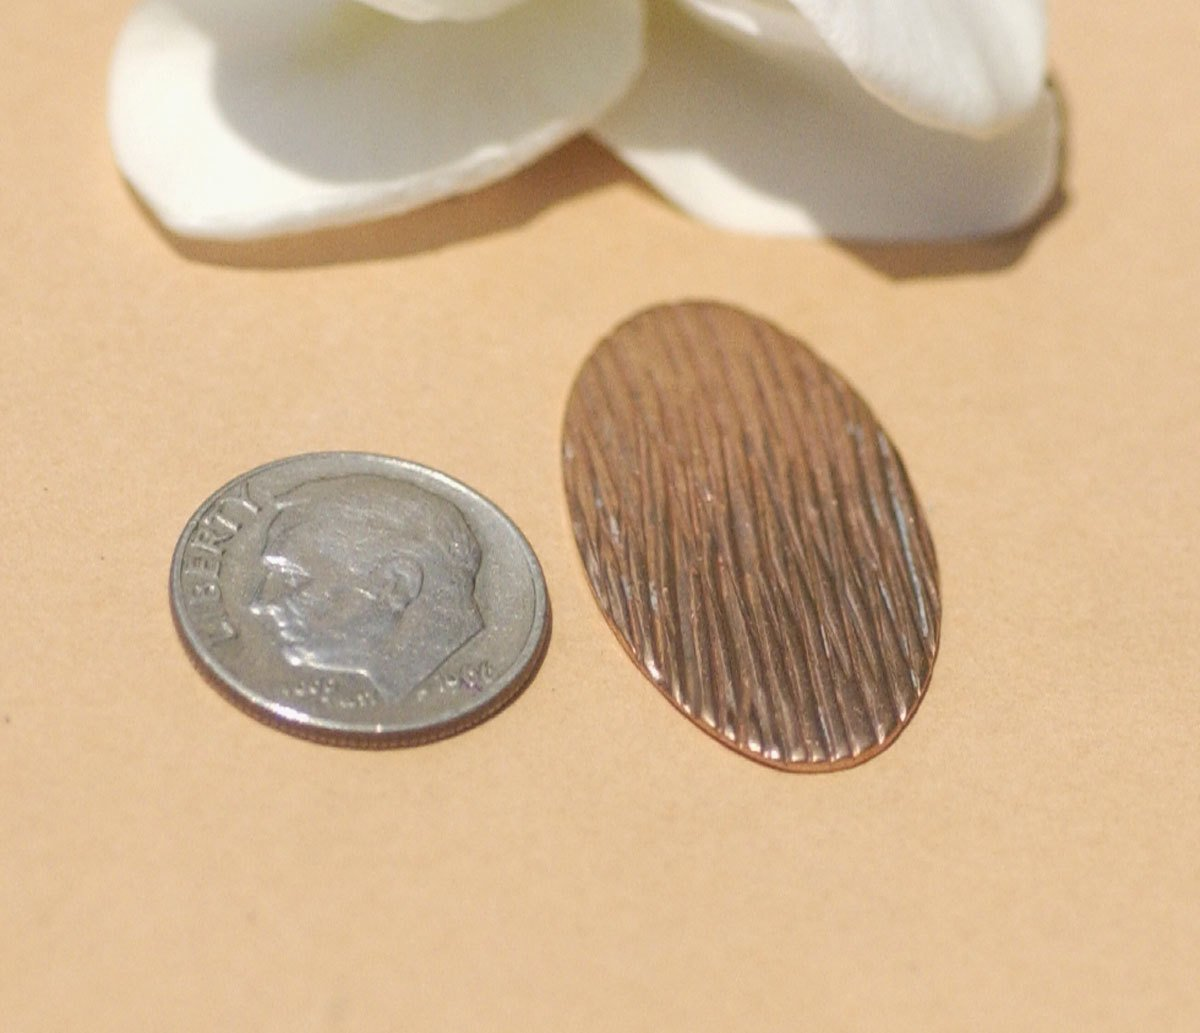 Woodgrain Pattern Oval 30mm x 17mm 24g Blanks Shape for Enameling Stamping Texturing Variety of Metals